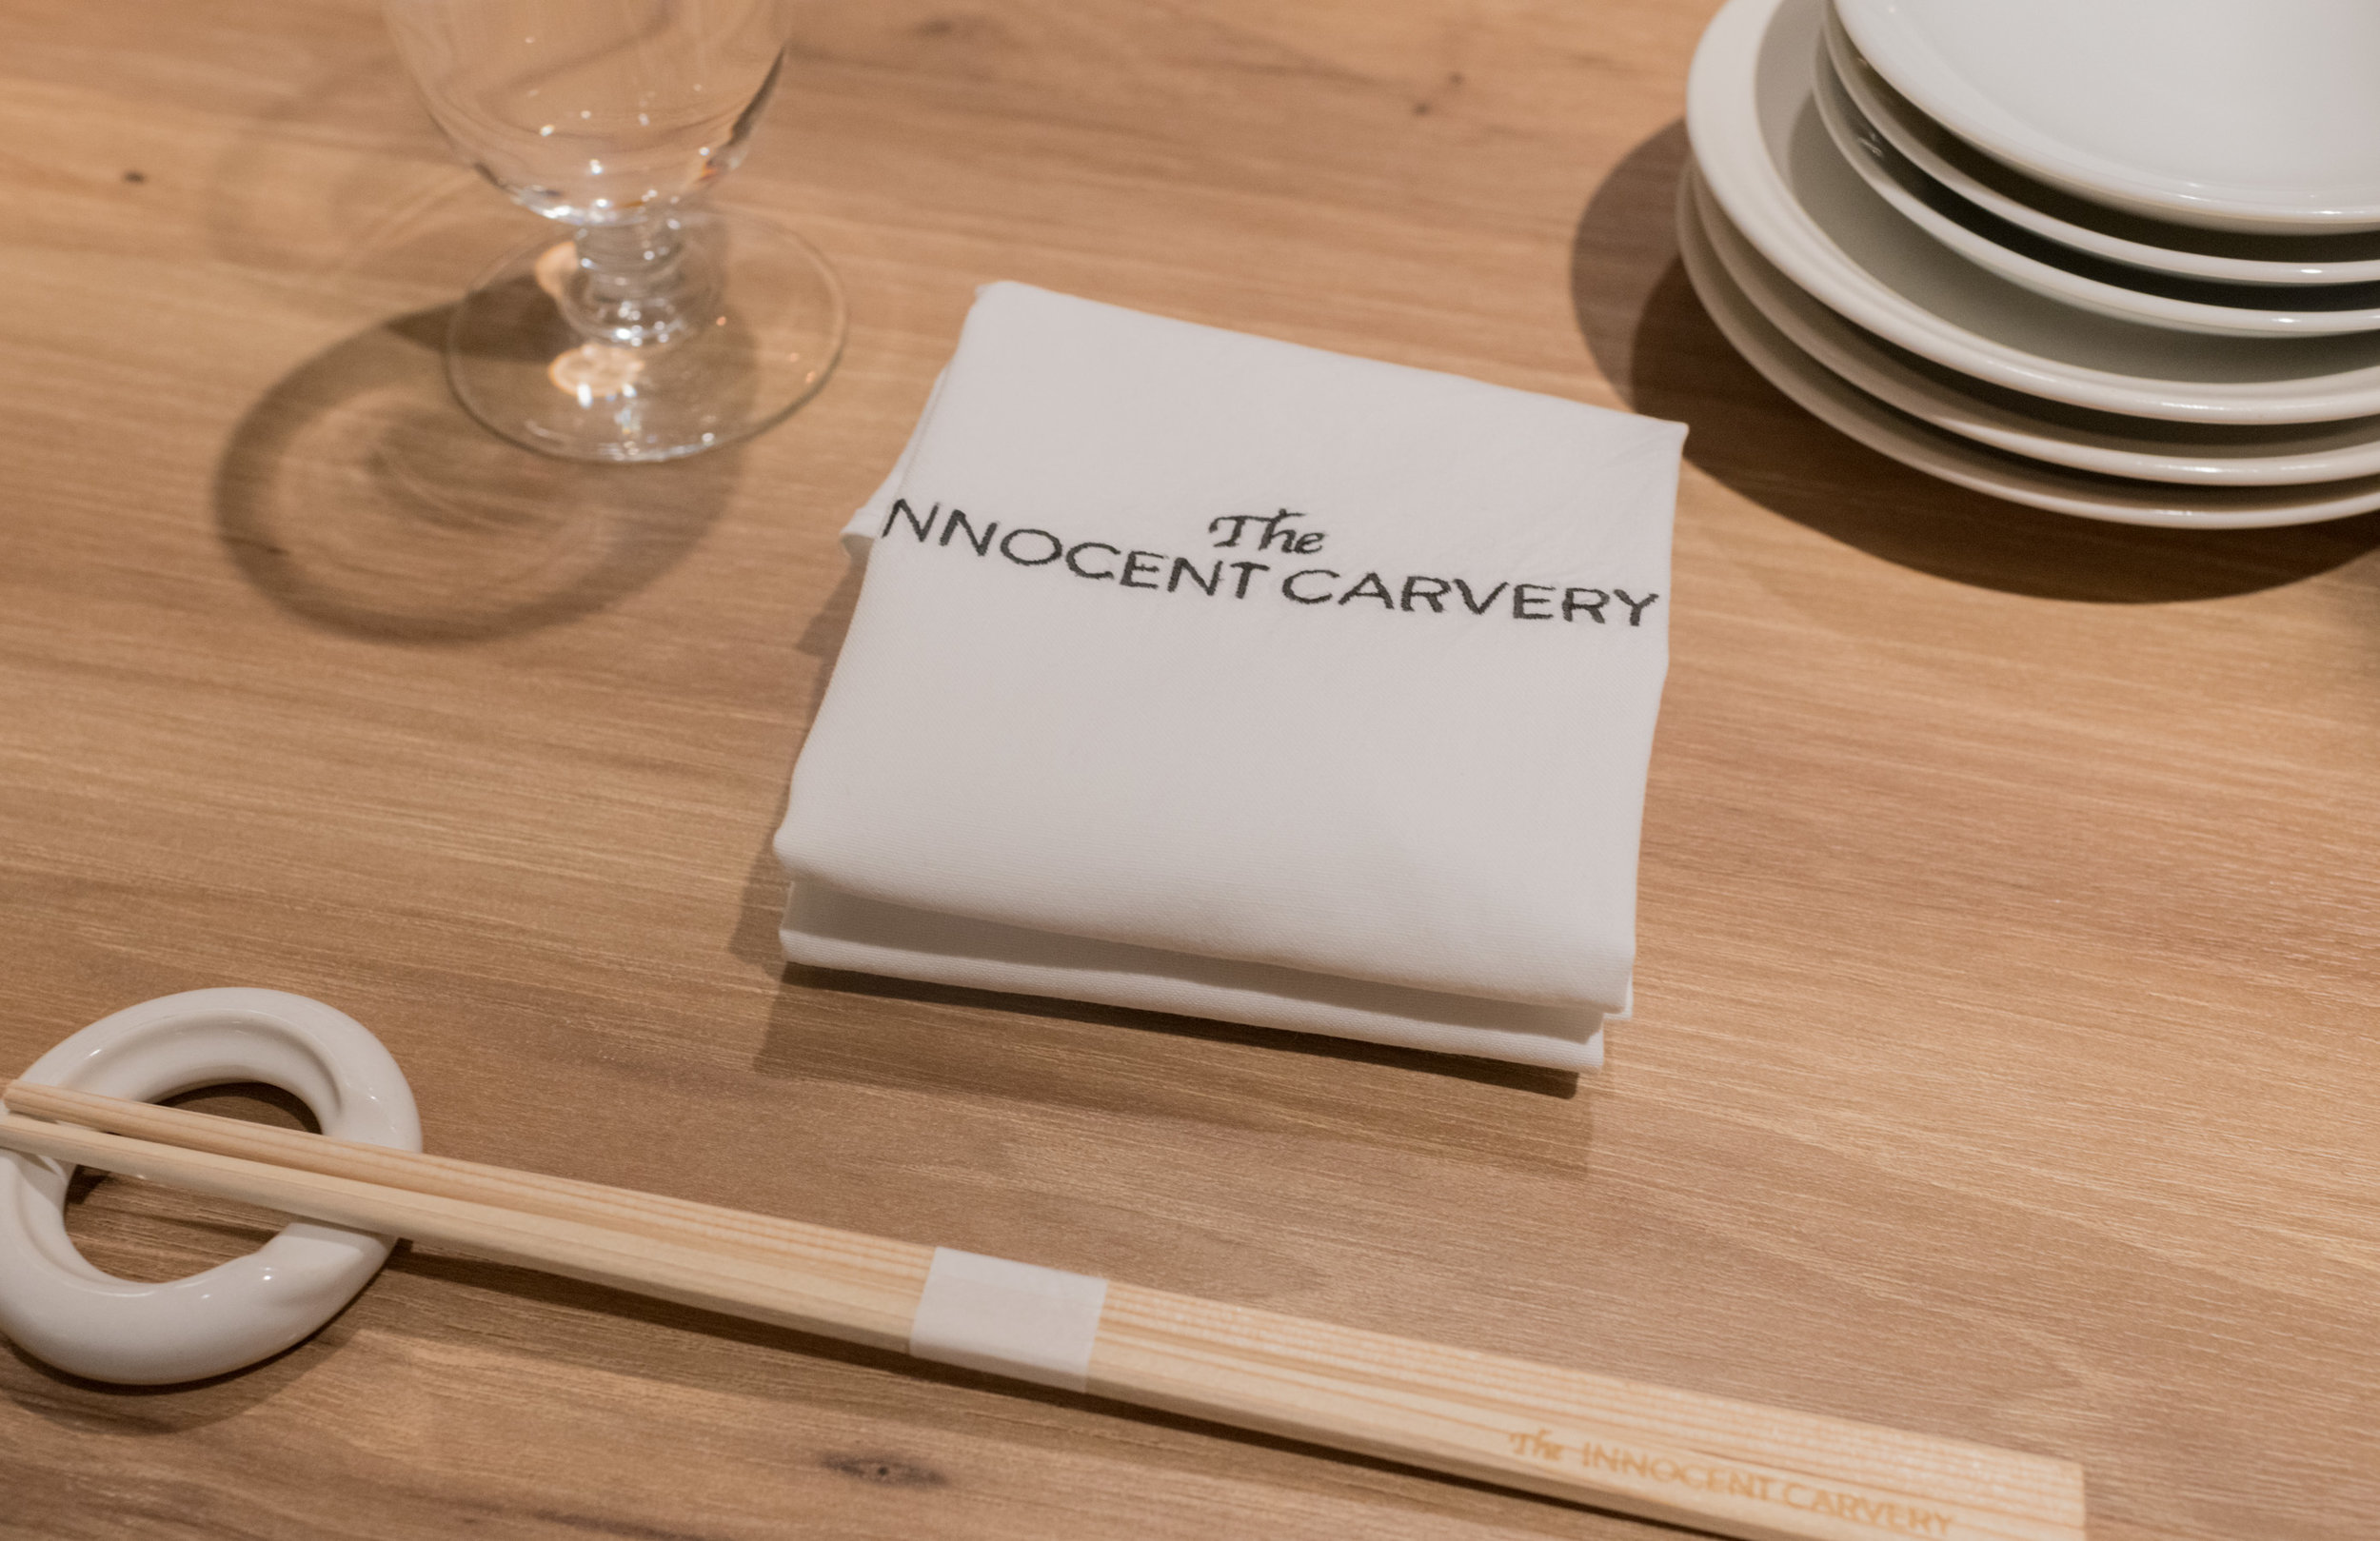 Innocent Carvery 17.jpg